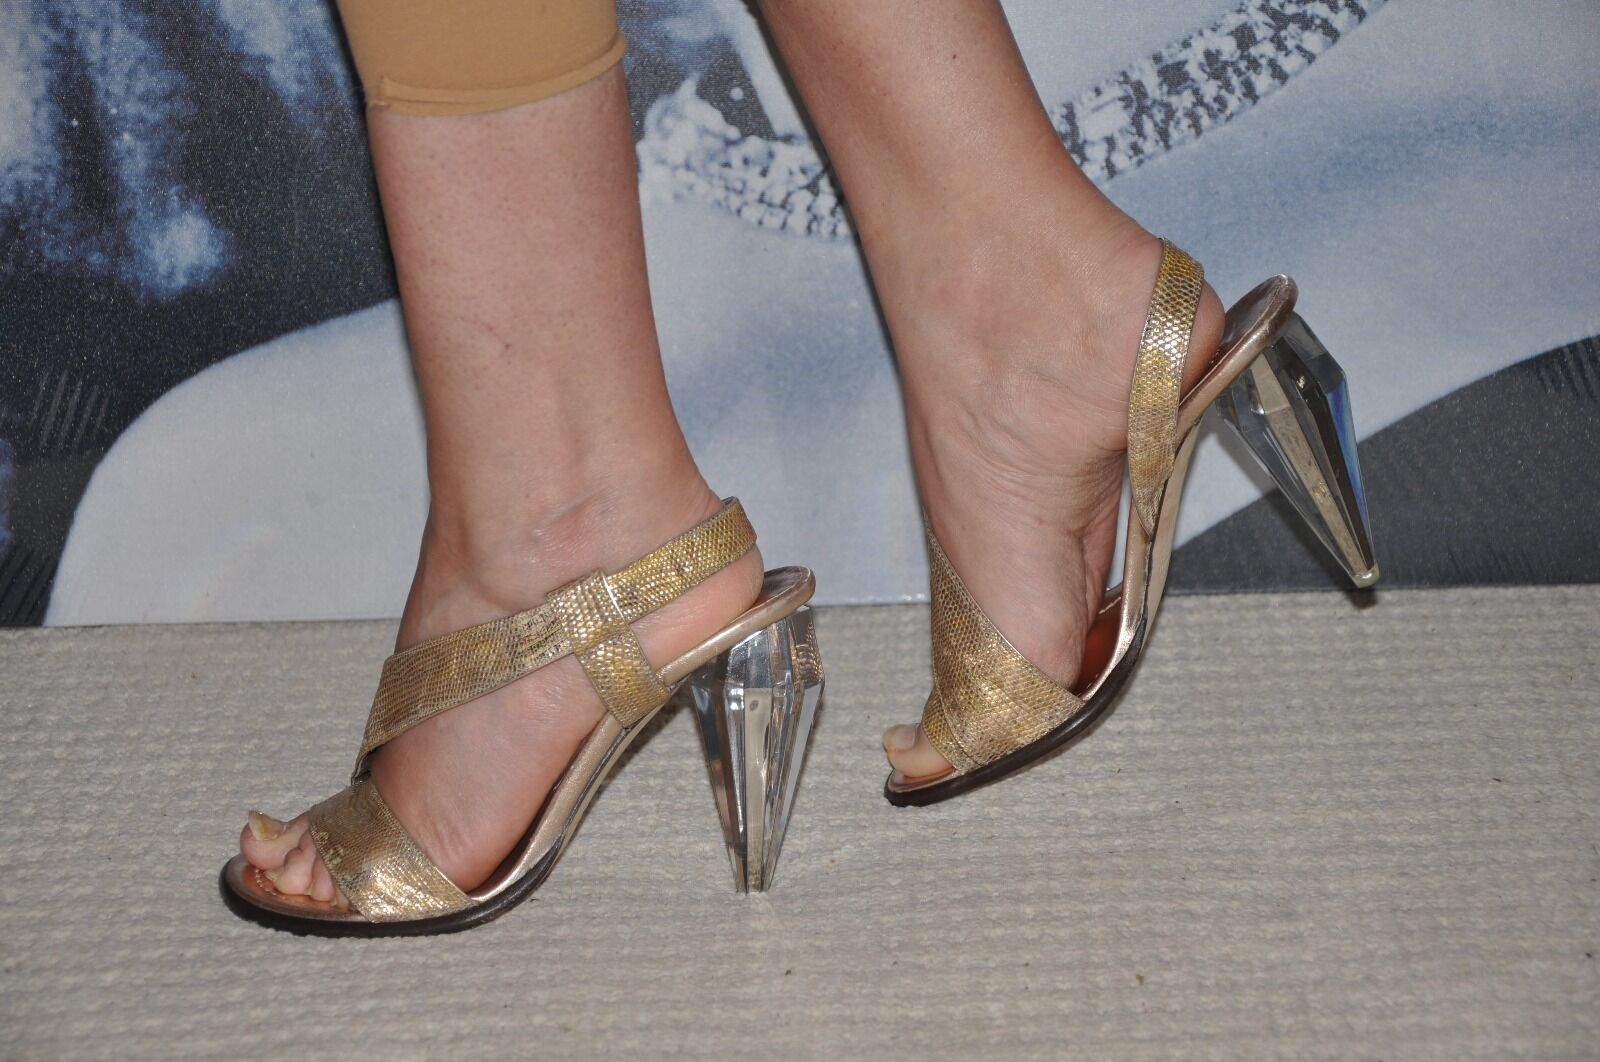 PARTY  MARC JACOBS  gold REAL LEATHER REPTILE LIZARD LIZARD LIZARD SHOES SANDALS&CLEAR HEELS 5 c20258